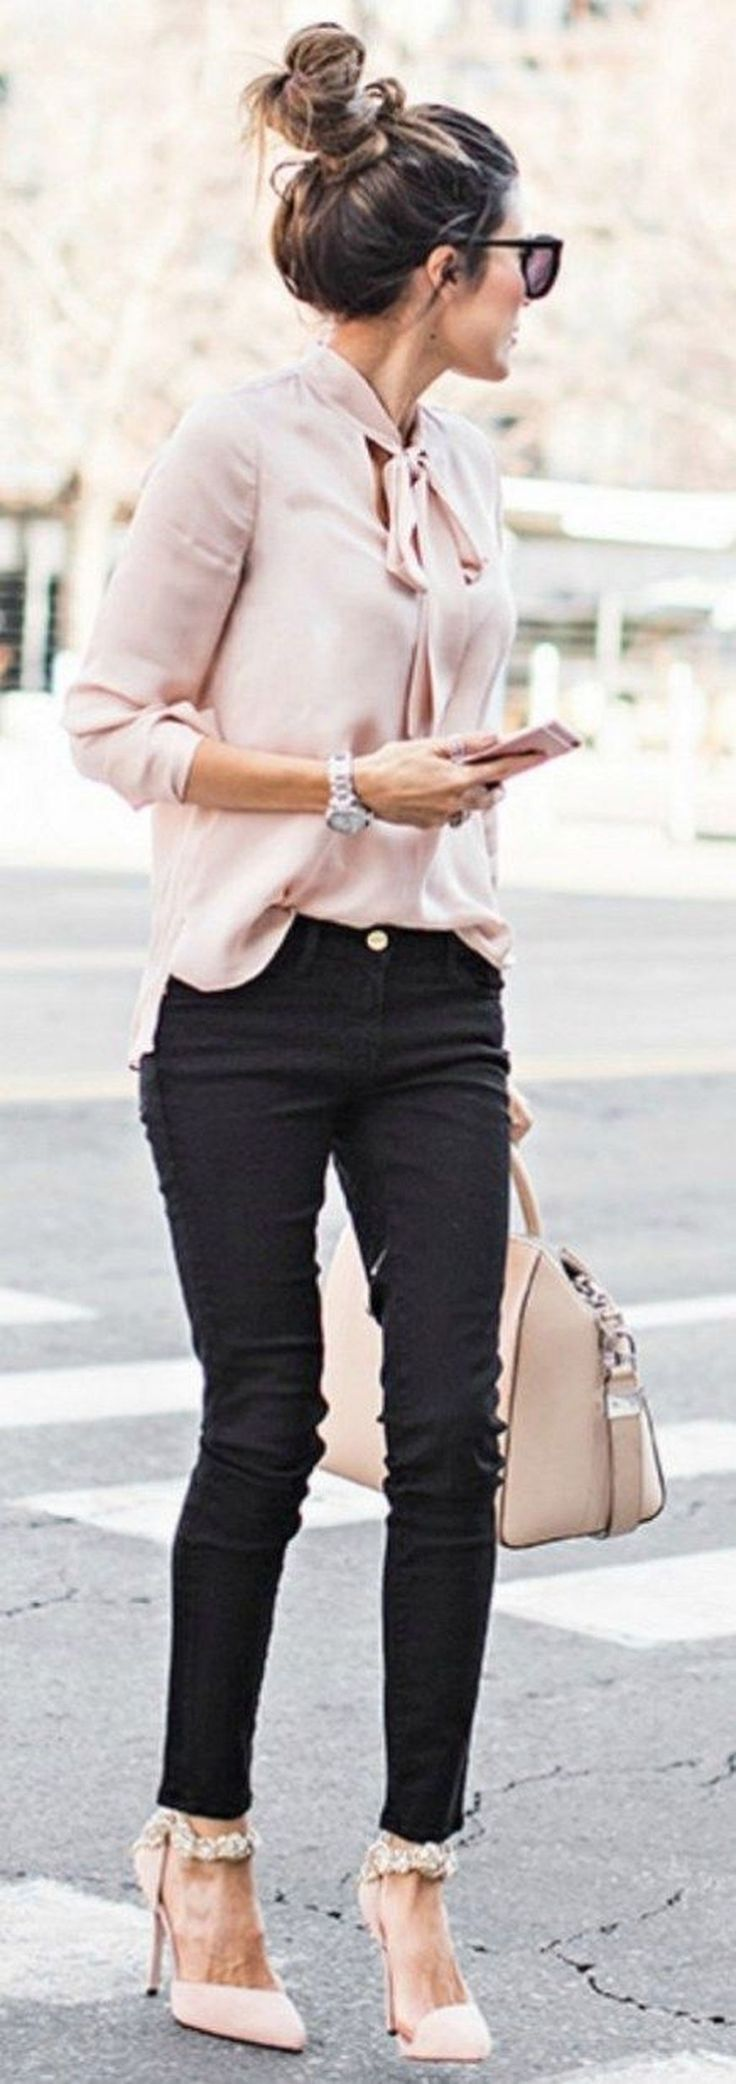 Great summer outfit ideas for workwear